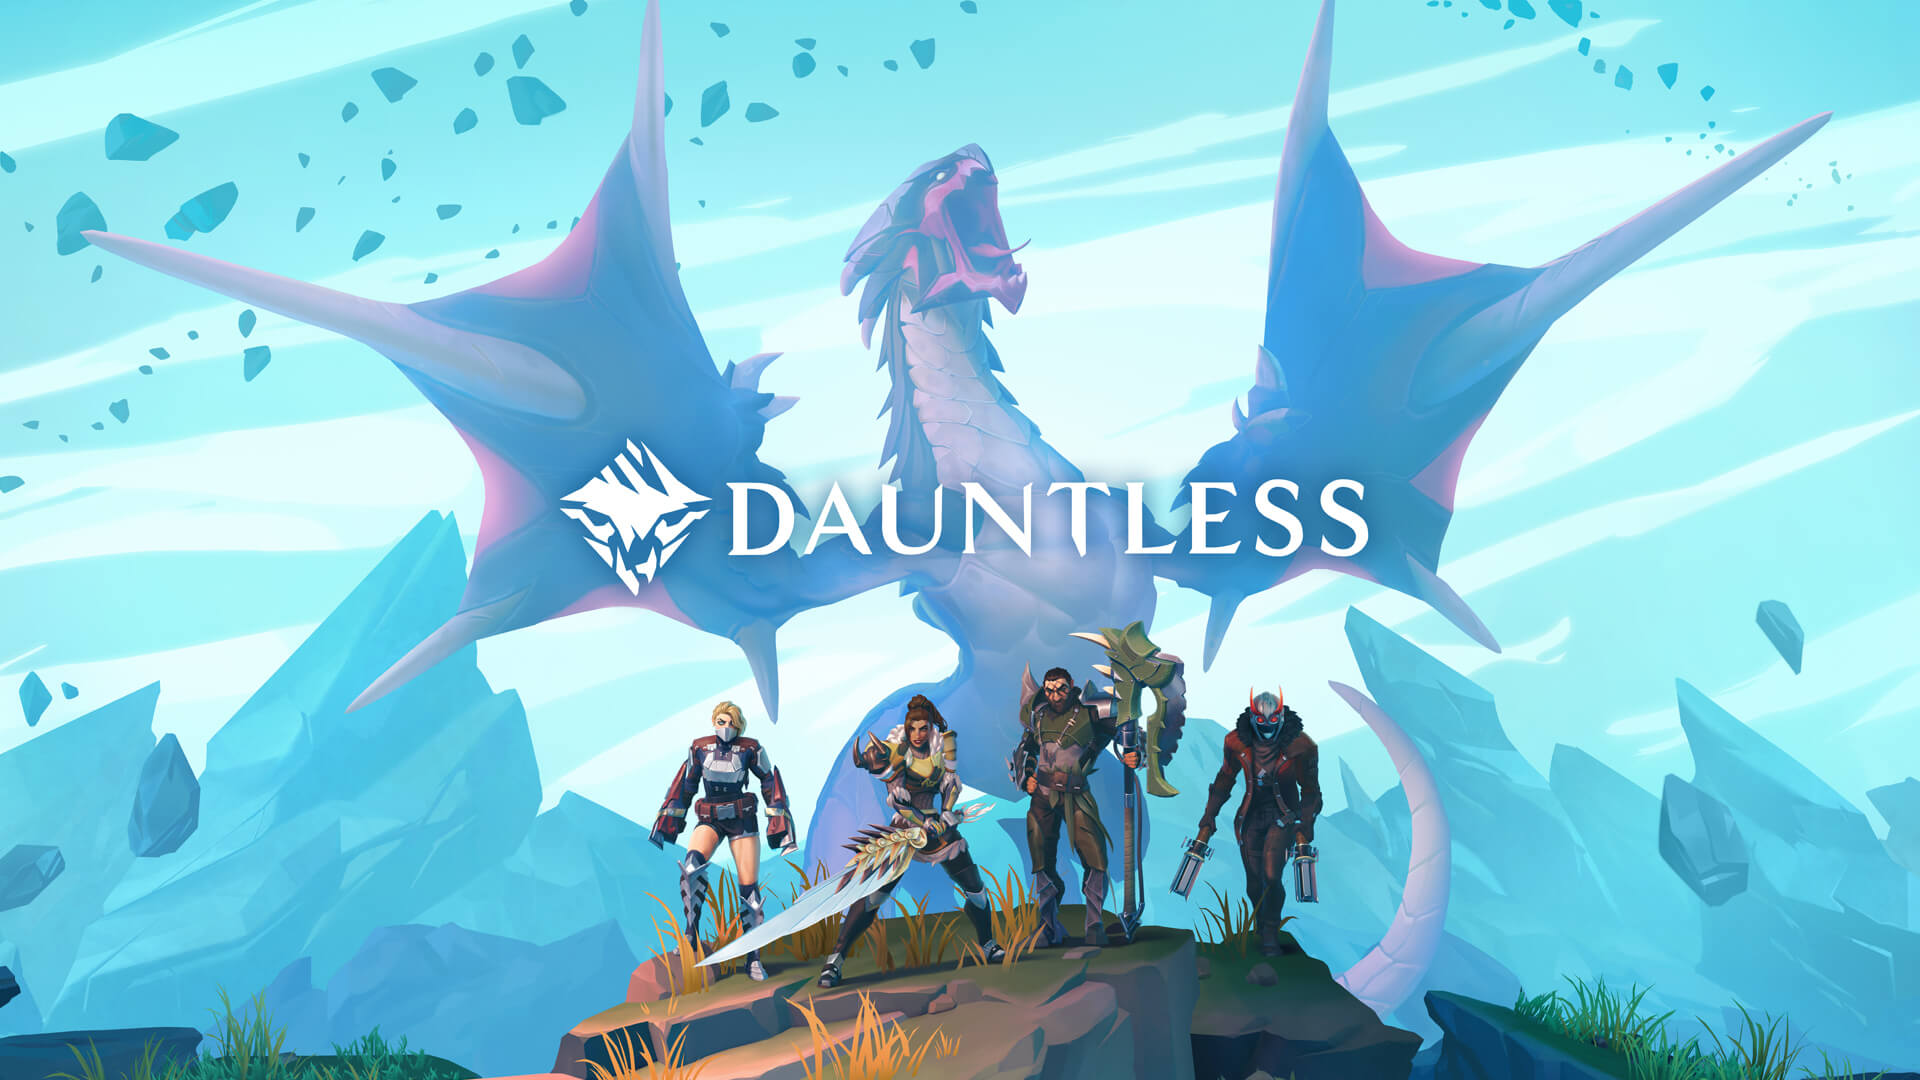 2020 Dauntless Roadmap Drops; New Cosmetics And Events On The Way